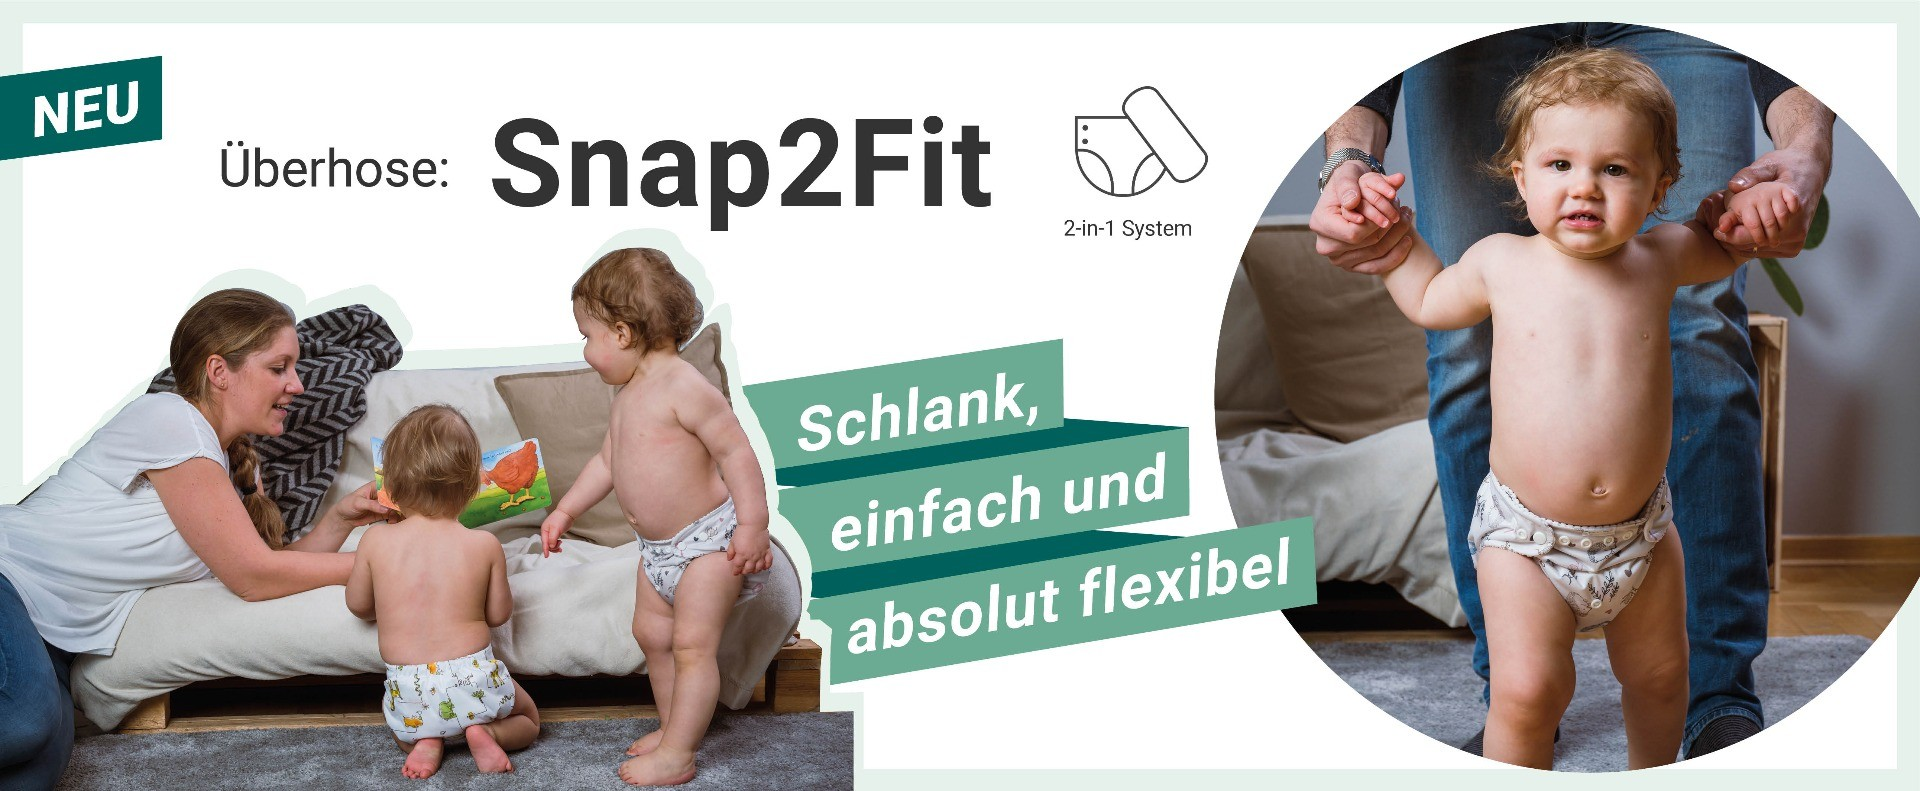 Snap2Fit